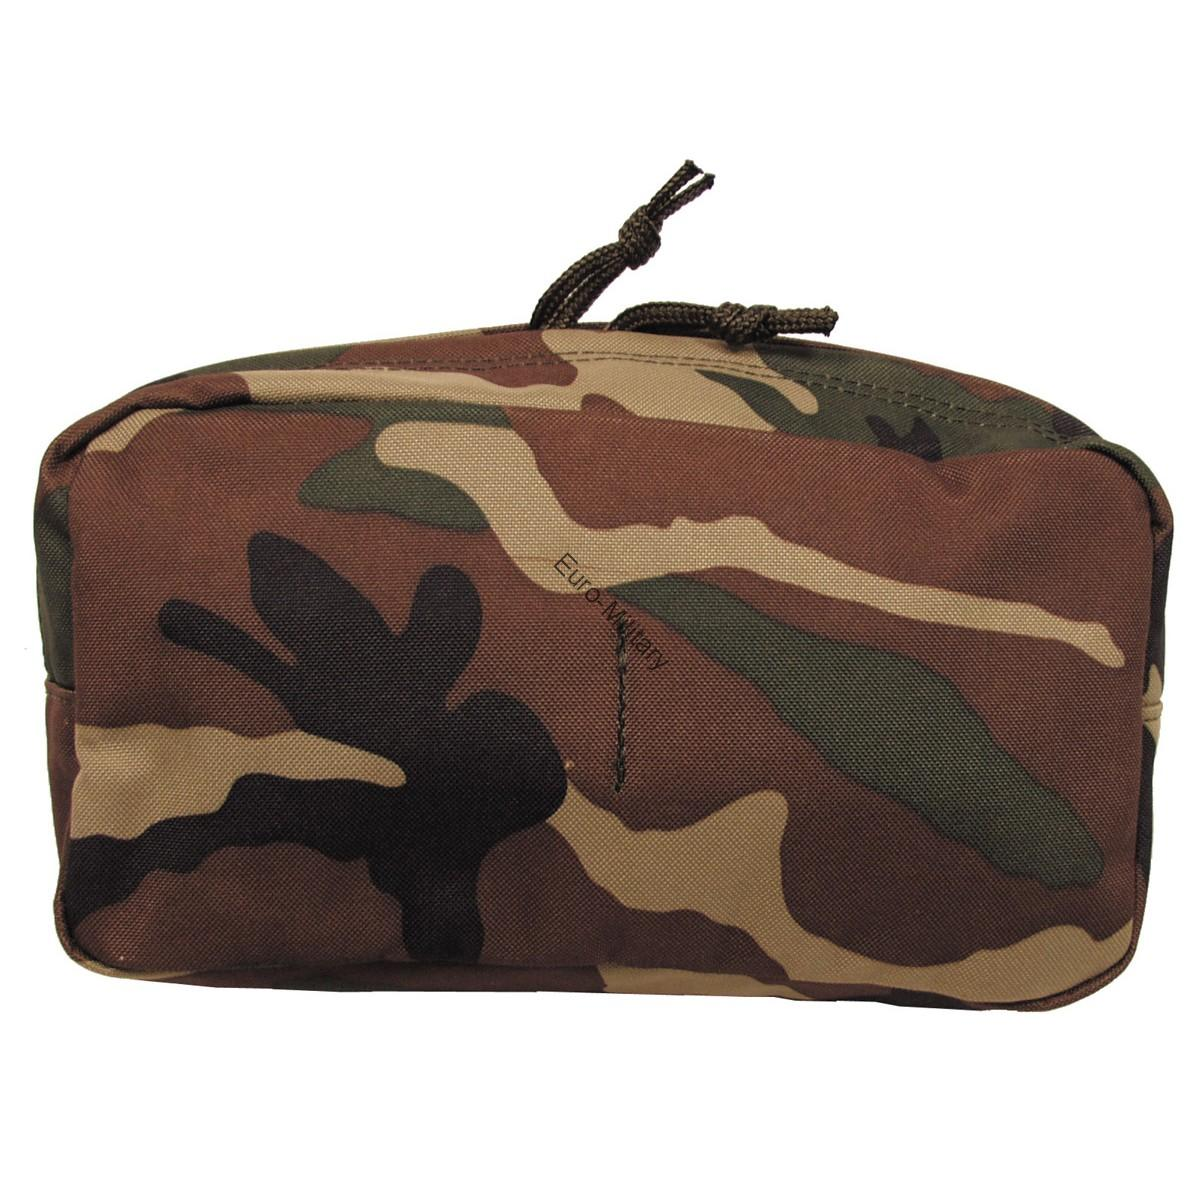 Tactical Utility Mollle Large Pouch - Woodland